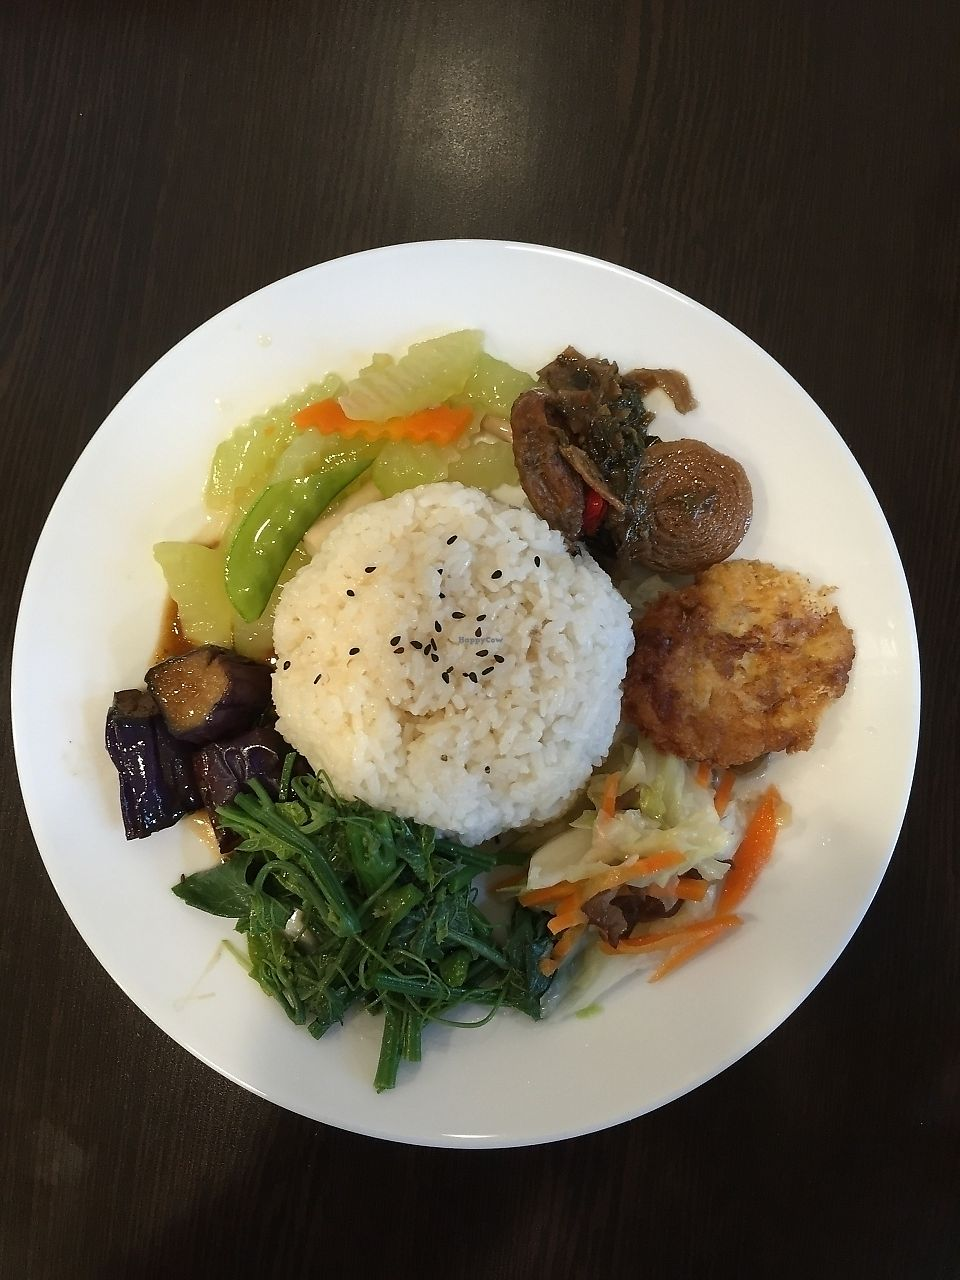 """Photo of Vegan House - maybe closed  by <a href=""""/members/profile/eatshitanddie"""">eatshitanddie</a> <br/>medley dish <br/> August 30, 2015  - <a href='/contact/abuse/image/62381/322451'>Report</a>"""